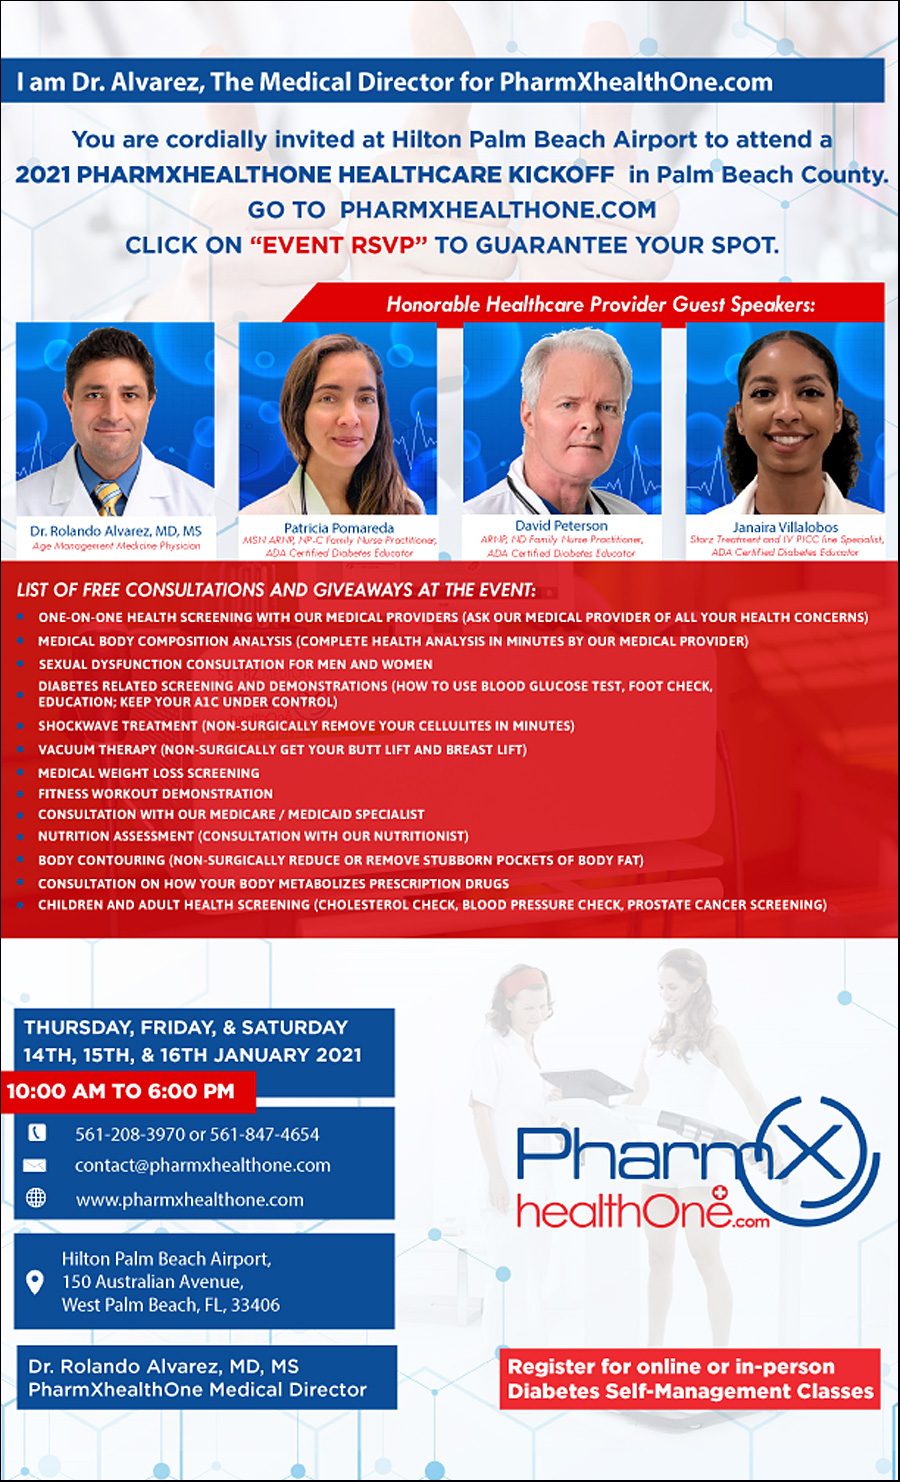 Free Wellness Luncheon Coming To Hilton West Palm Beach Airport, Jan. 14-16; One-On-One Screenings, Seca Medical Body Composition Analyzer